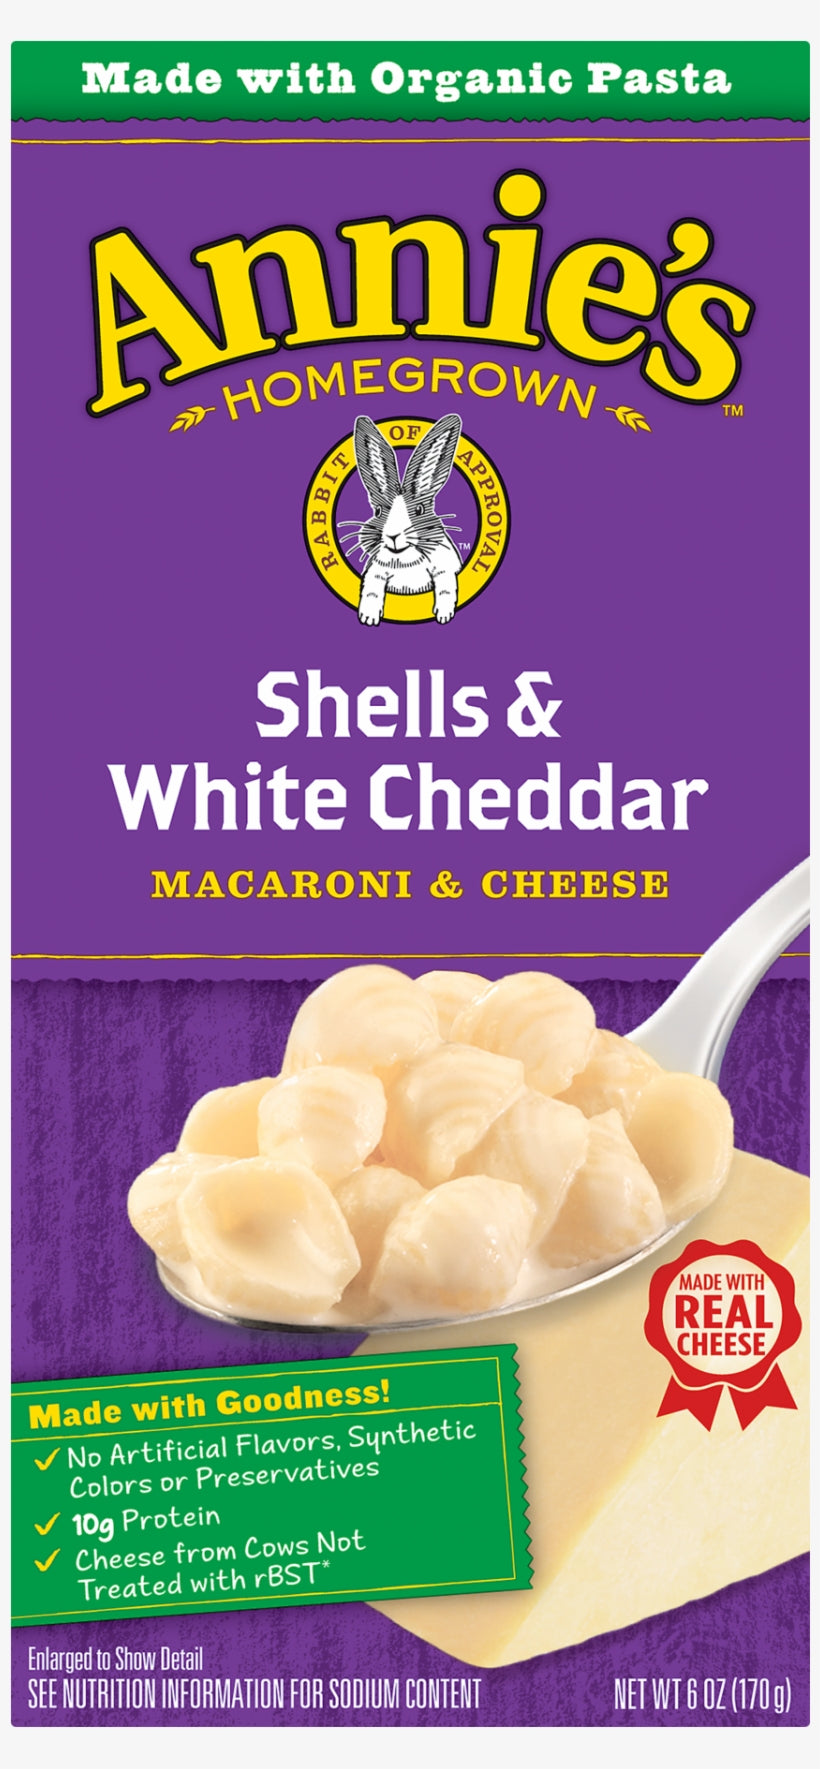 Organic Shells & White Cheddar Mac & Cheese (Annie's) - Grateful Produce Box